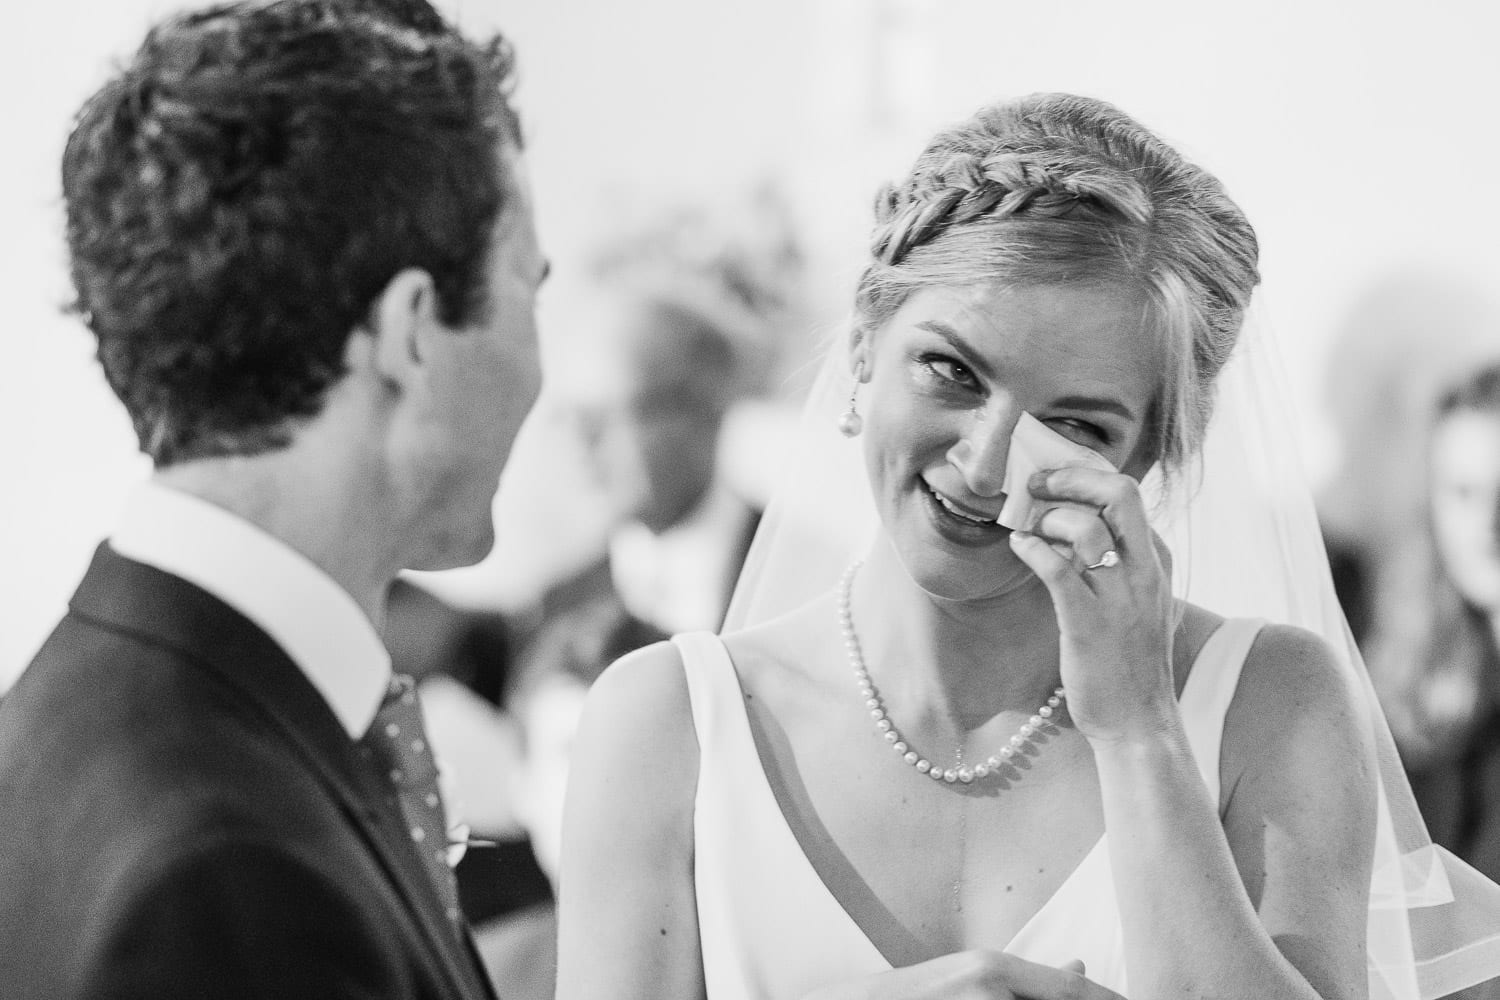 The bride wipes away a tear